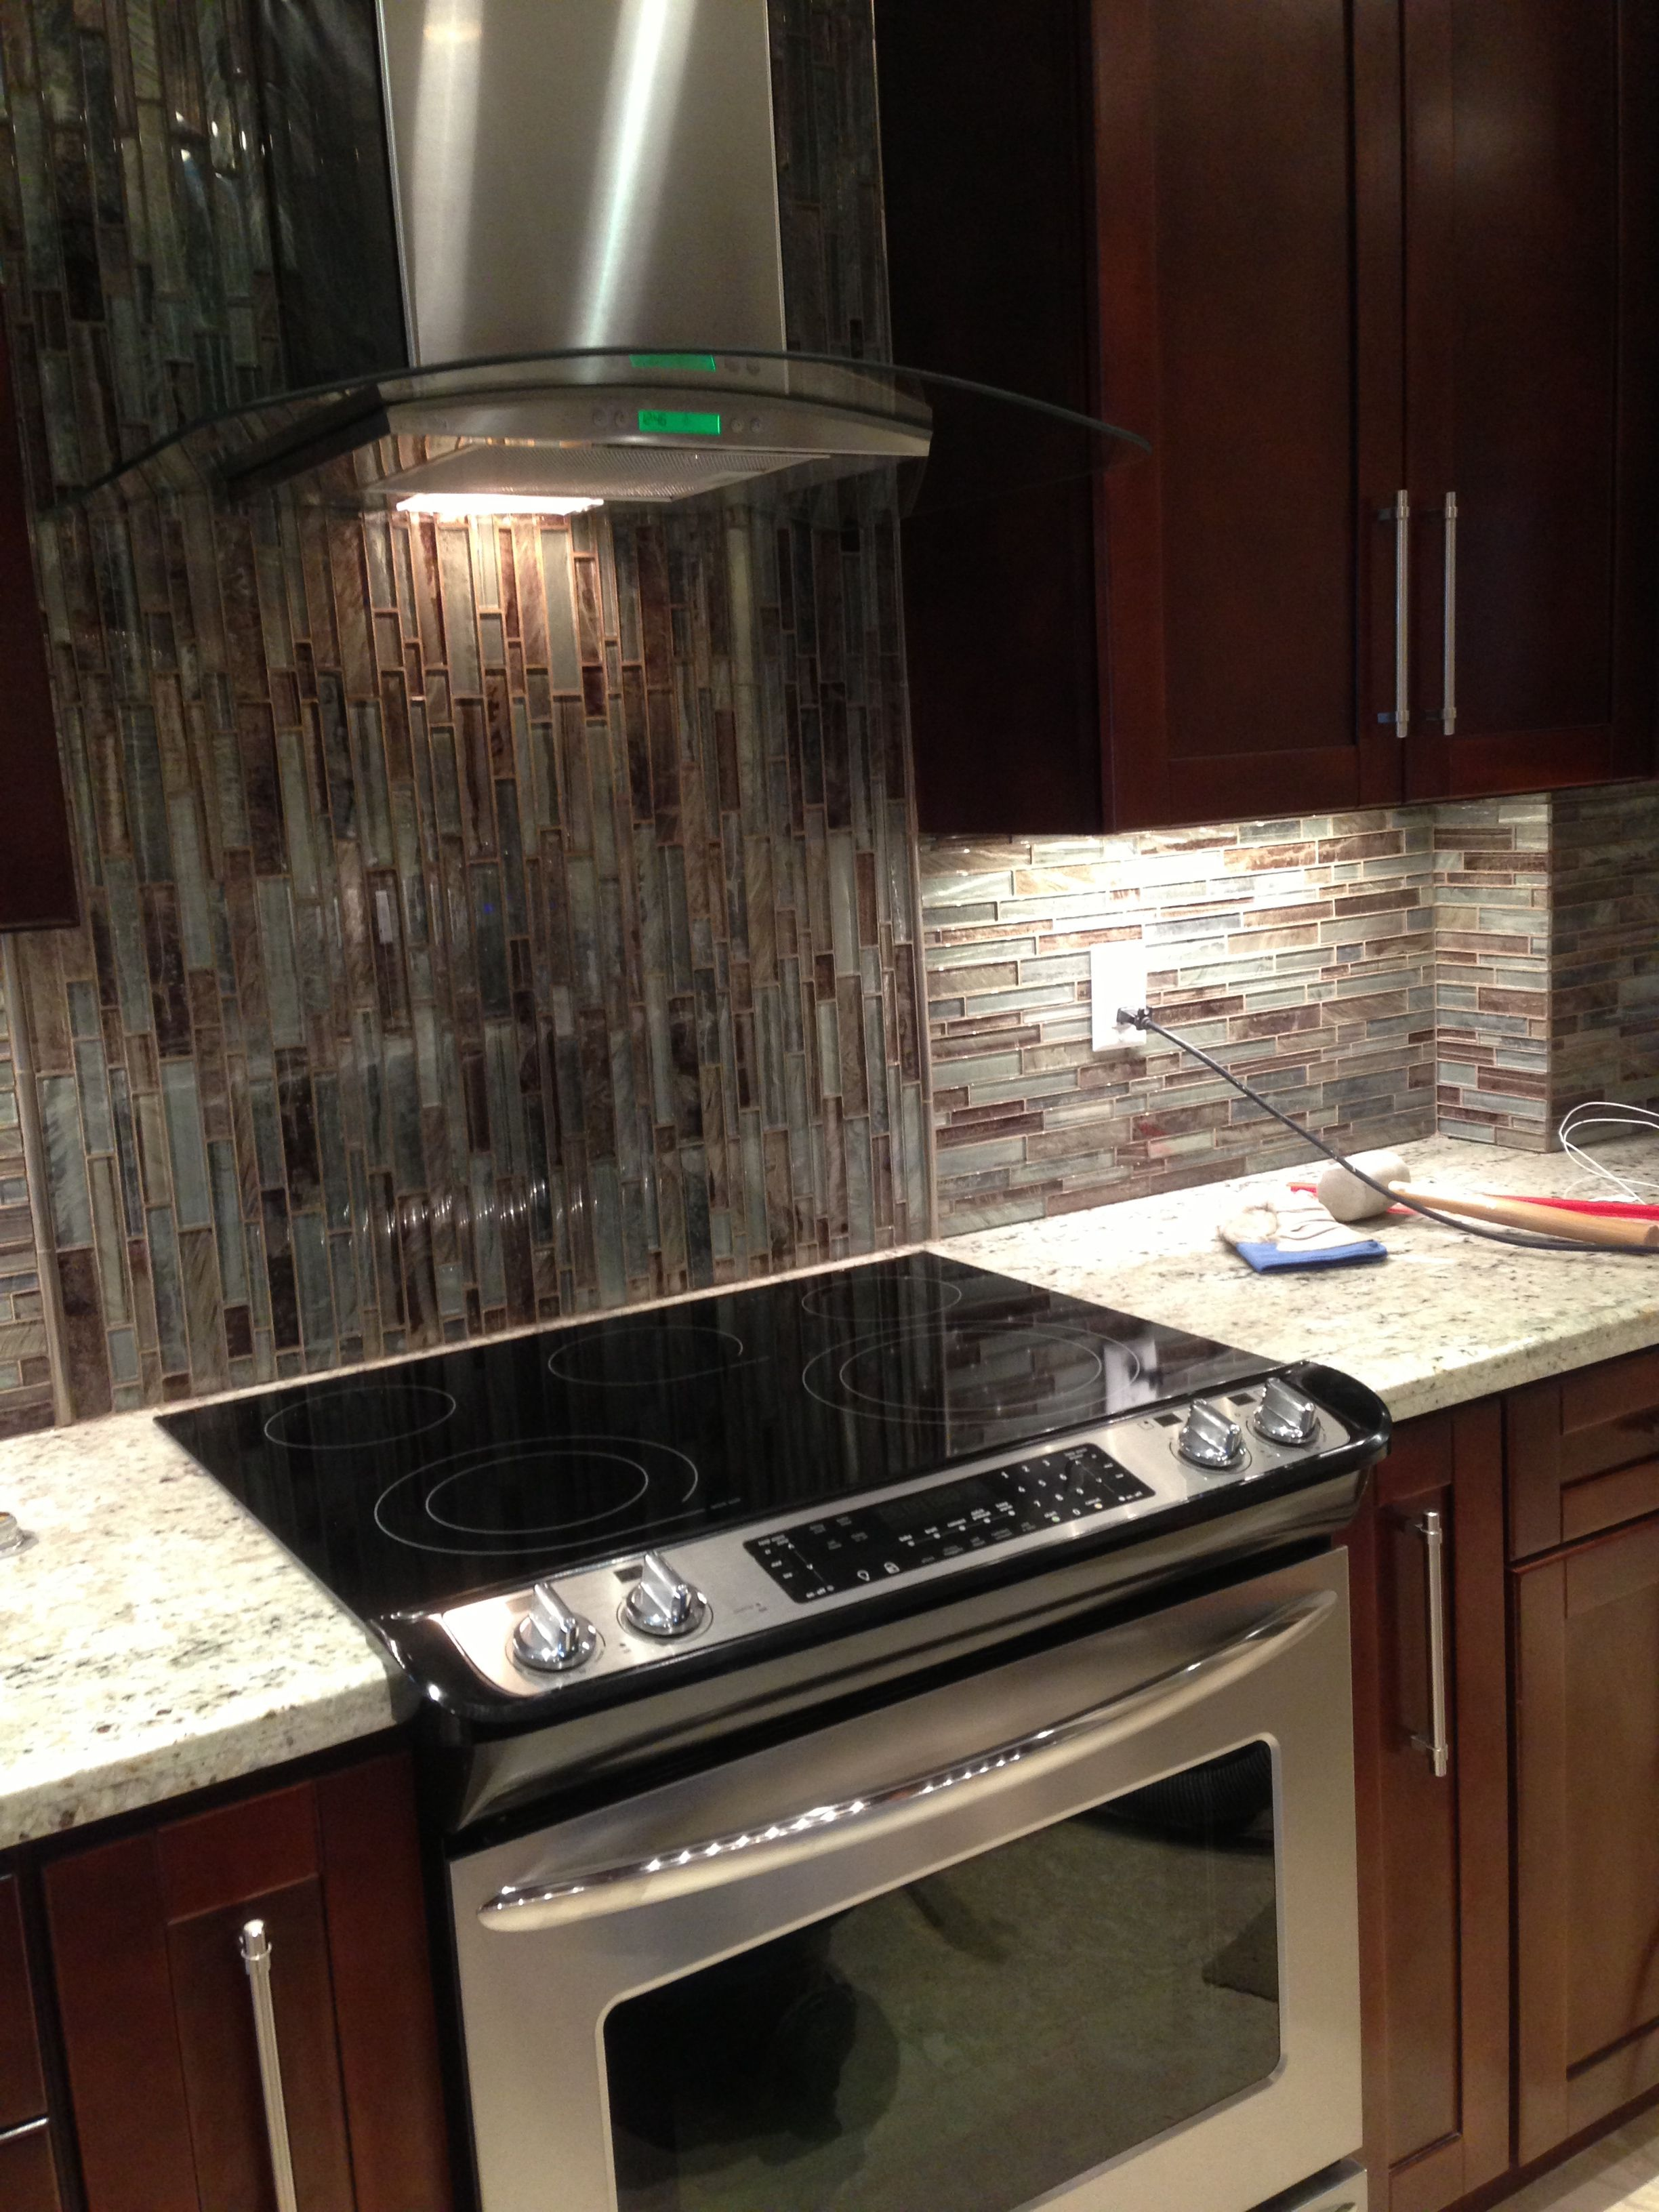 Newly Remodeled Galley Kitchen With Glass Backsplash And